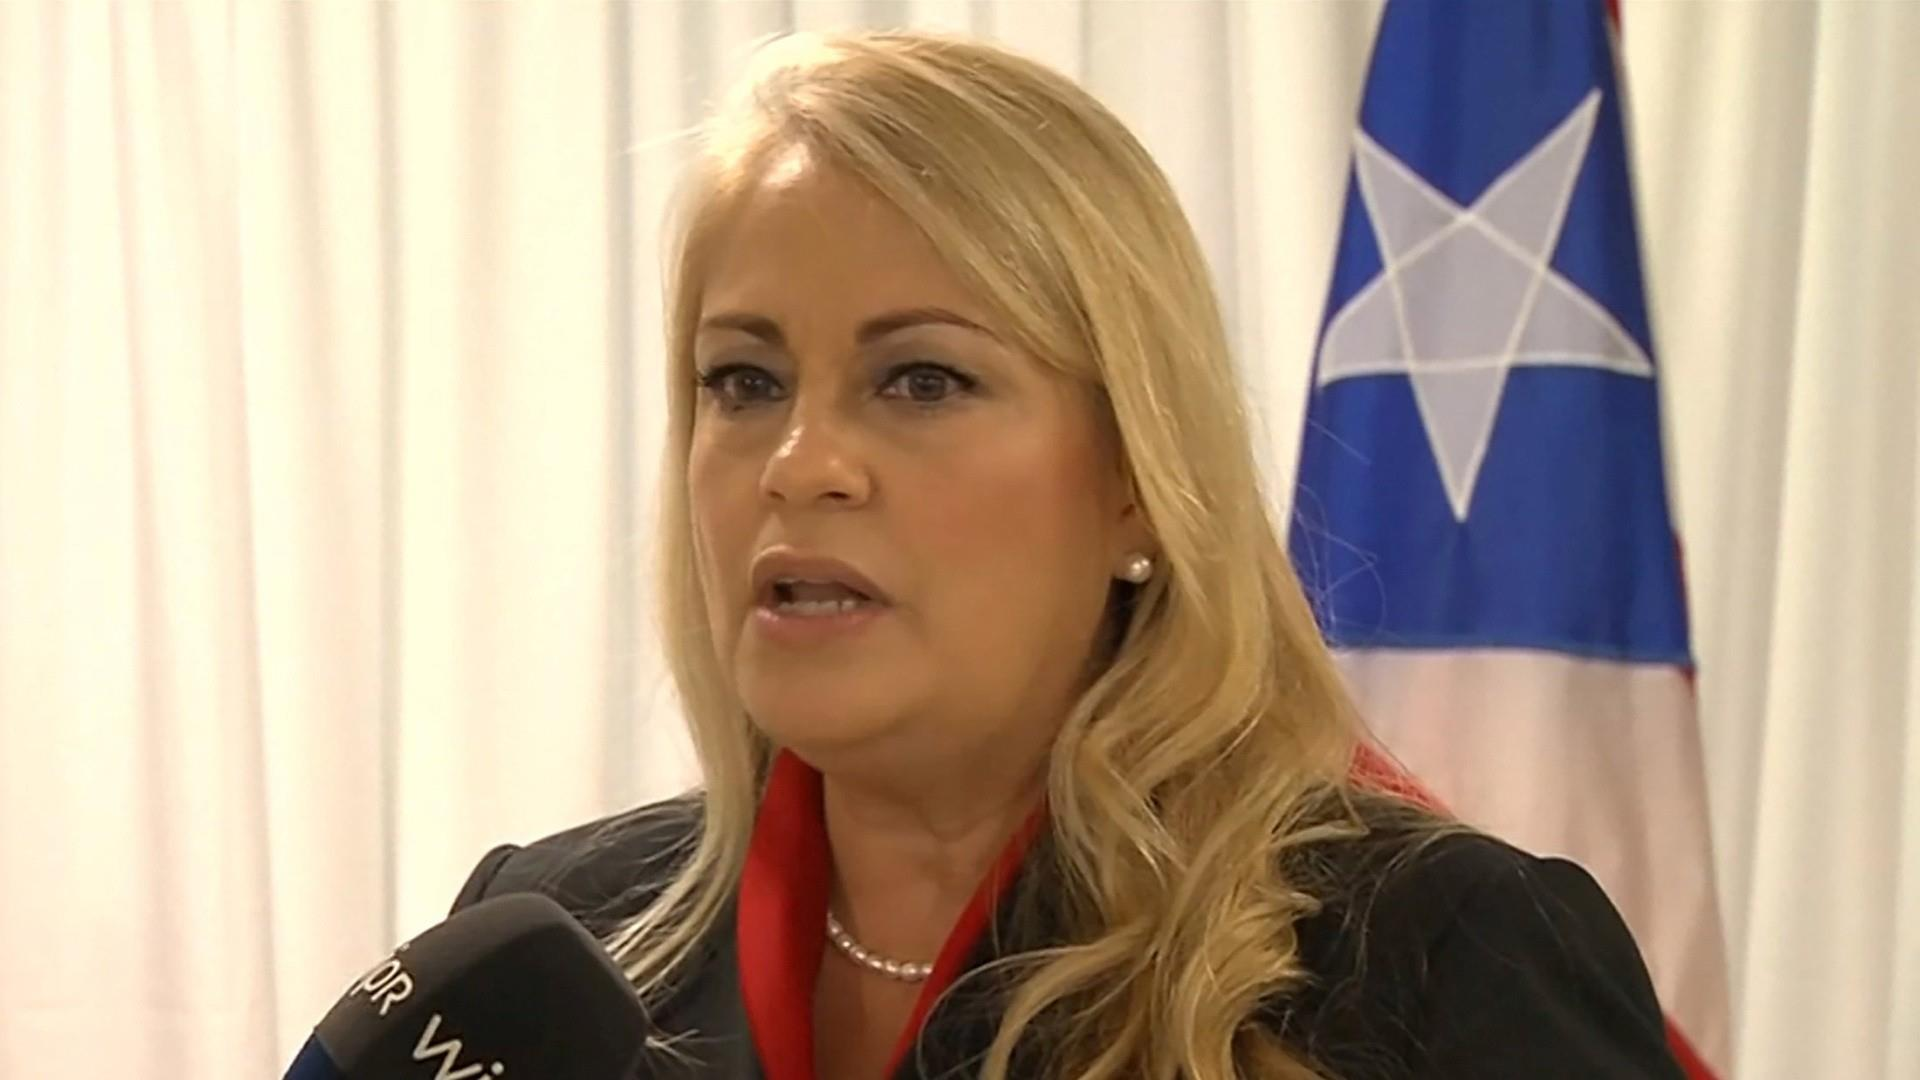 Official who was set to replace Puerto Rican governor refuses the job